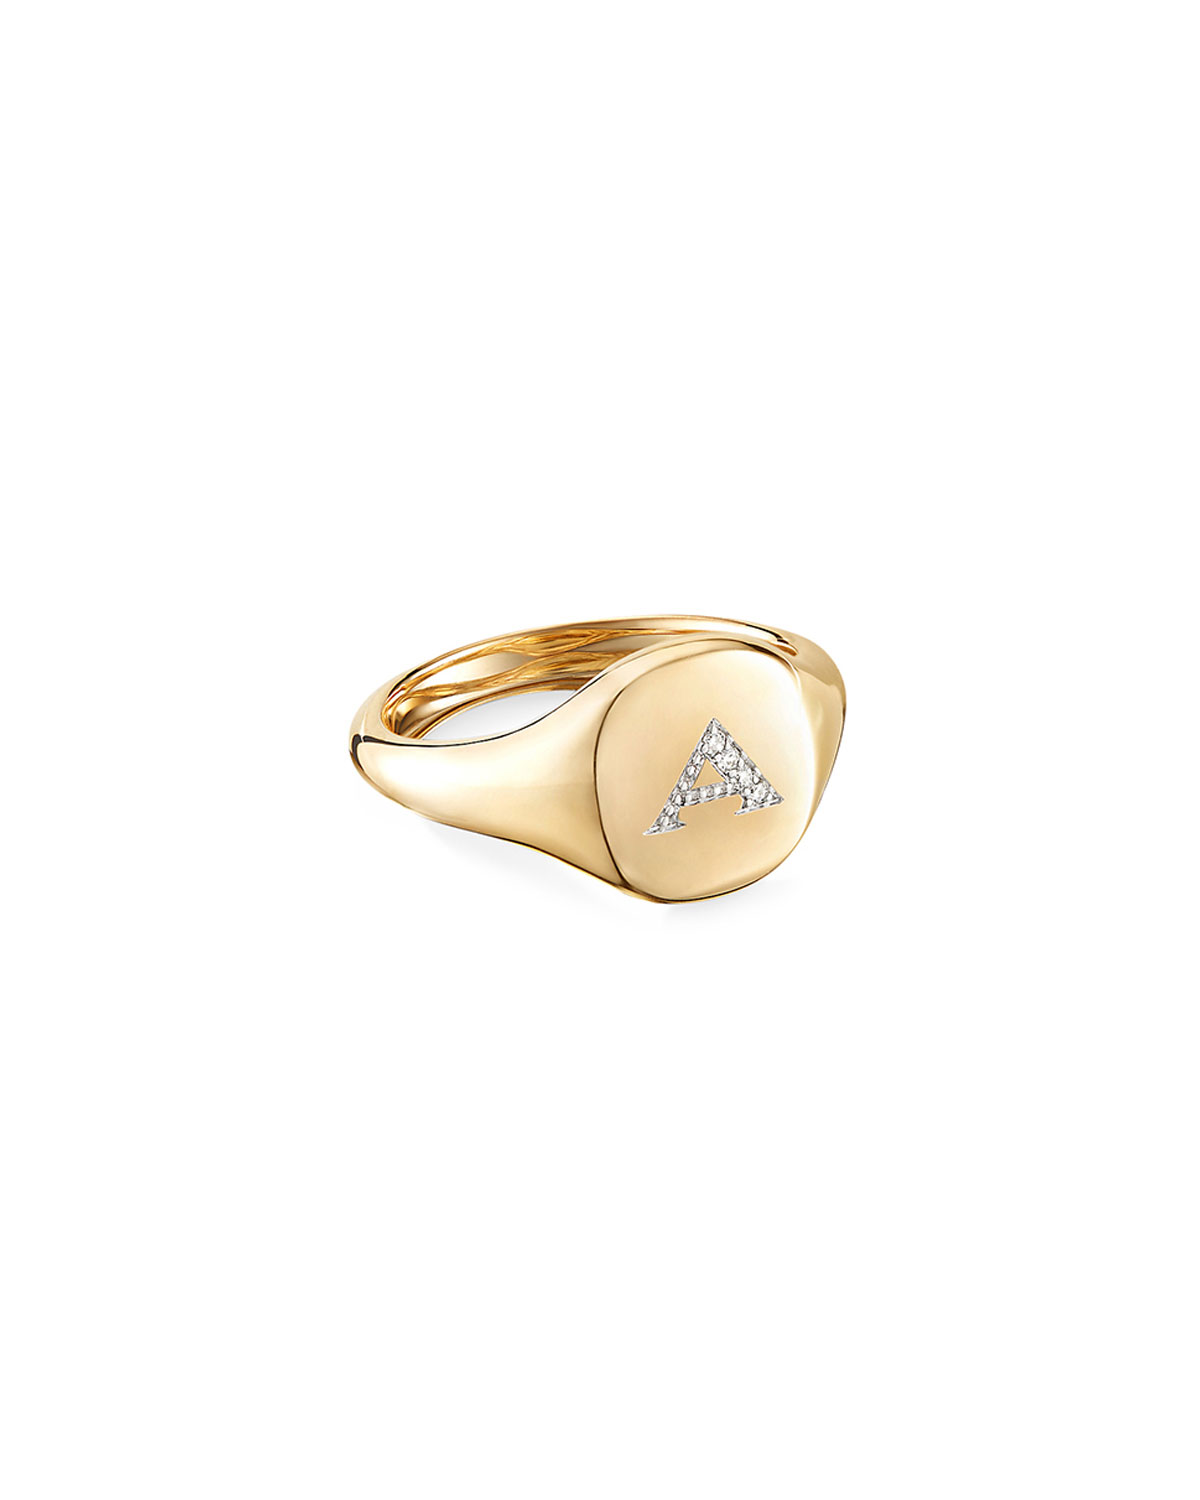 David Yurman Mini DY Initial A Pinky Ring in 18K Yellow Gold with Diamonds, Size 4